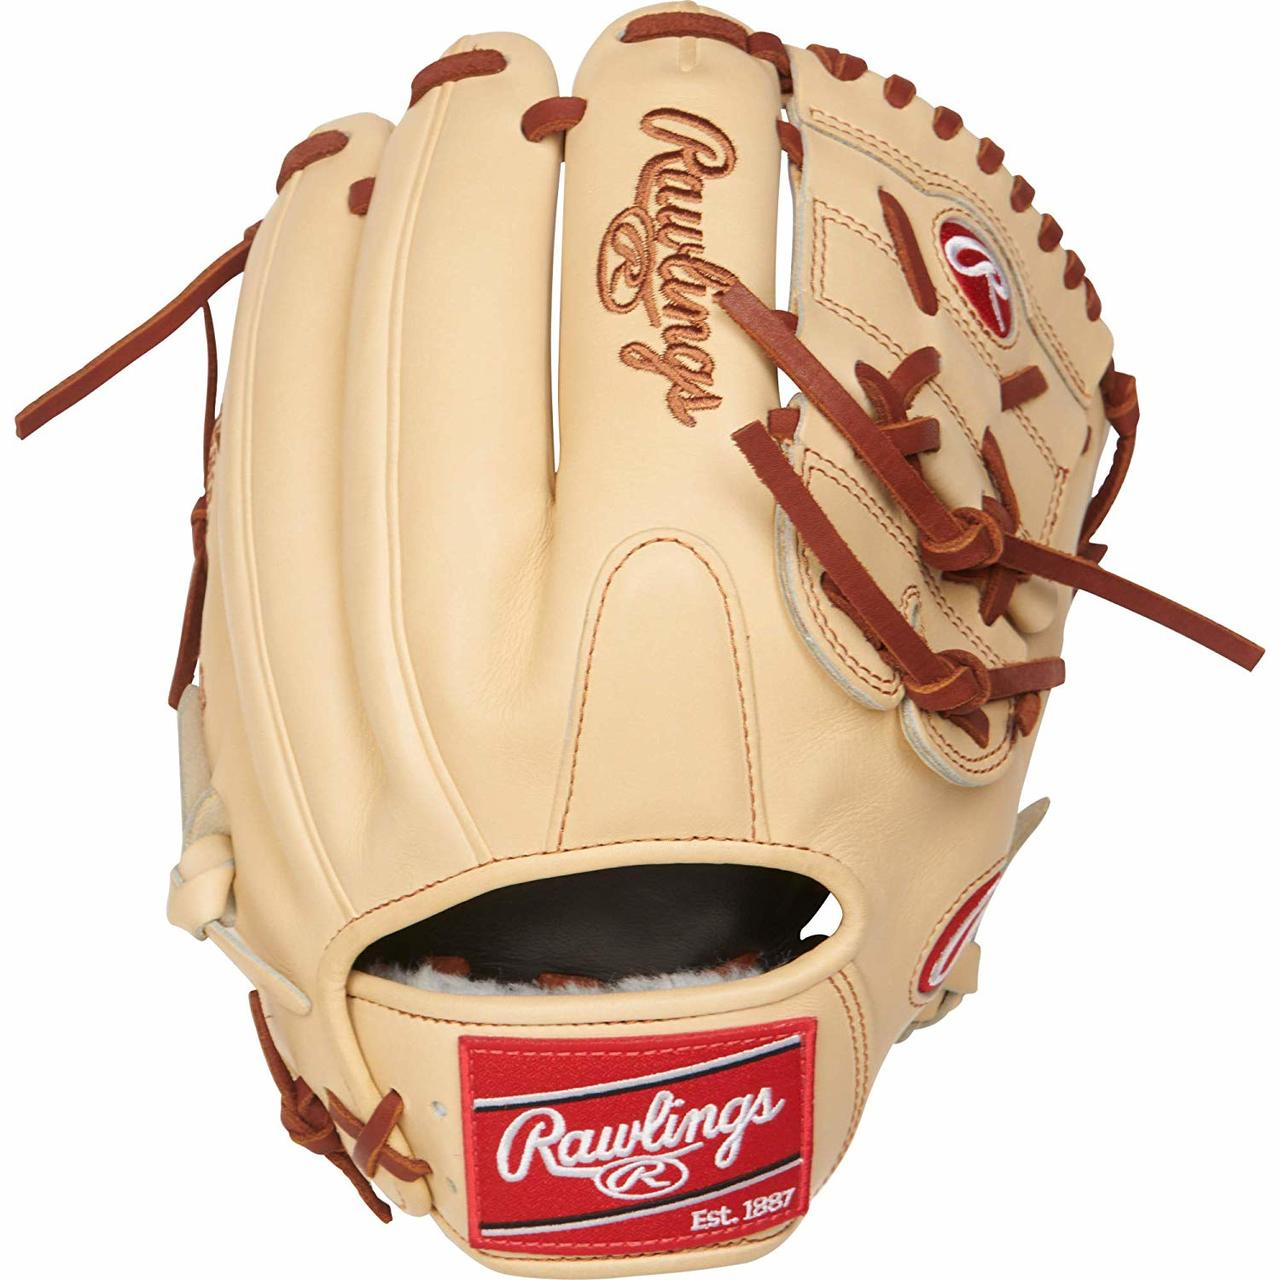 rawlings-pro-preferred-205-9cc-11-75-baseball-glove-right-hand-throw PROS205-9CC-RightHandThrow Rawlings 083321522604 The 11.75-inch Rawlings Pro Preferred infield/pitchers glove is the pinnacle of